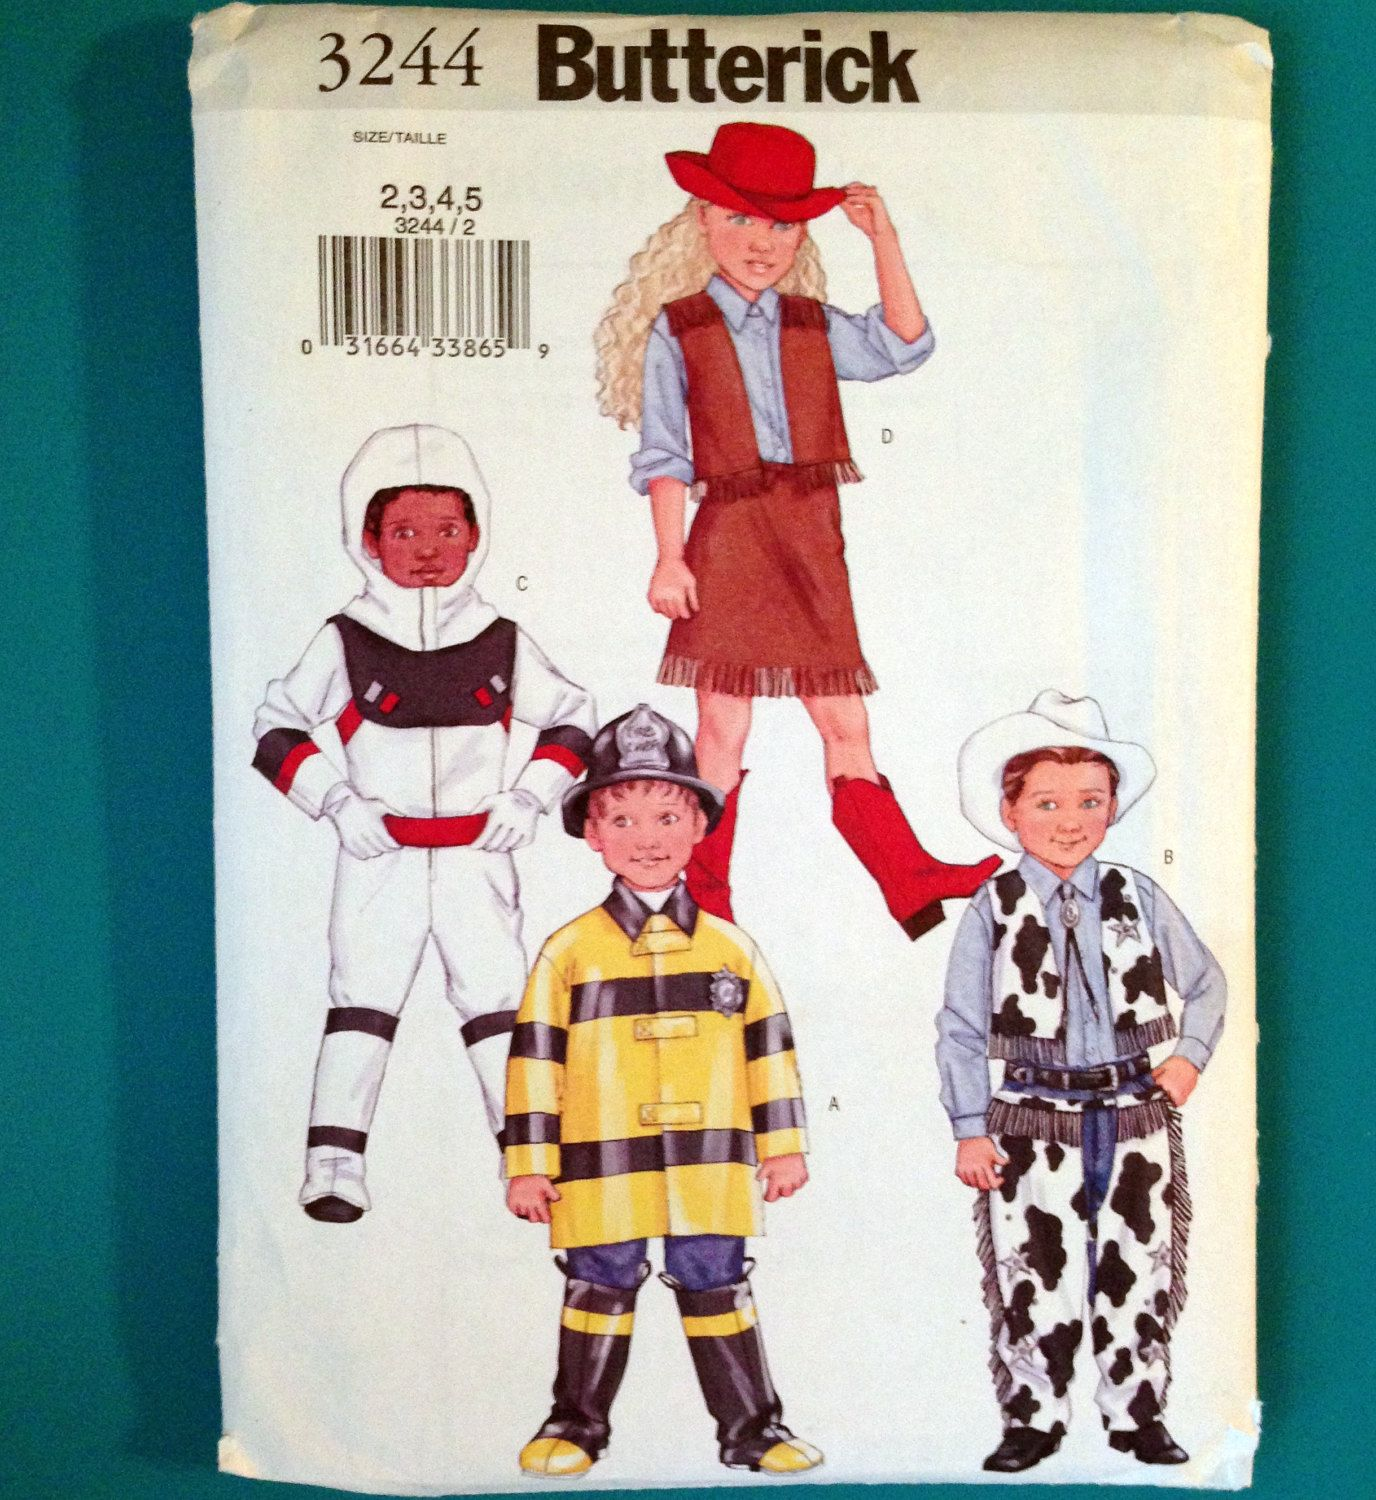 butterick 3244 child costume pattern cowboy cowgirl astronaut firefighter sizes 2 3 4 5 childrens halloween - Childrens Halloween Costume Patterns